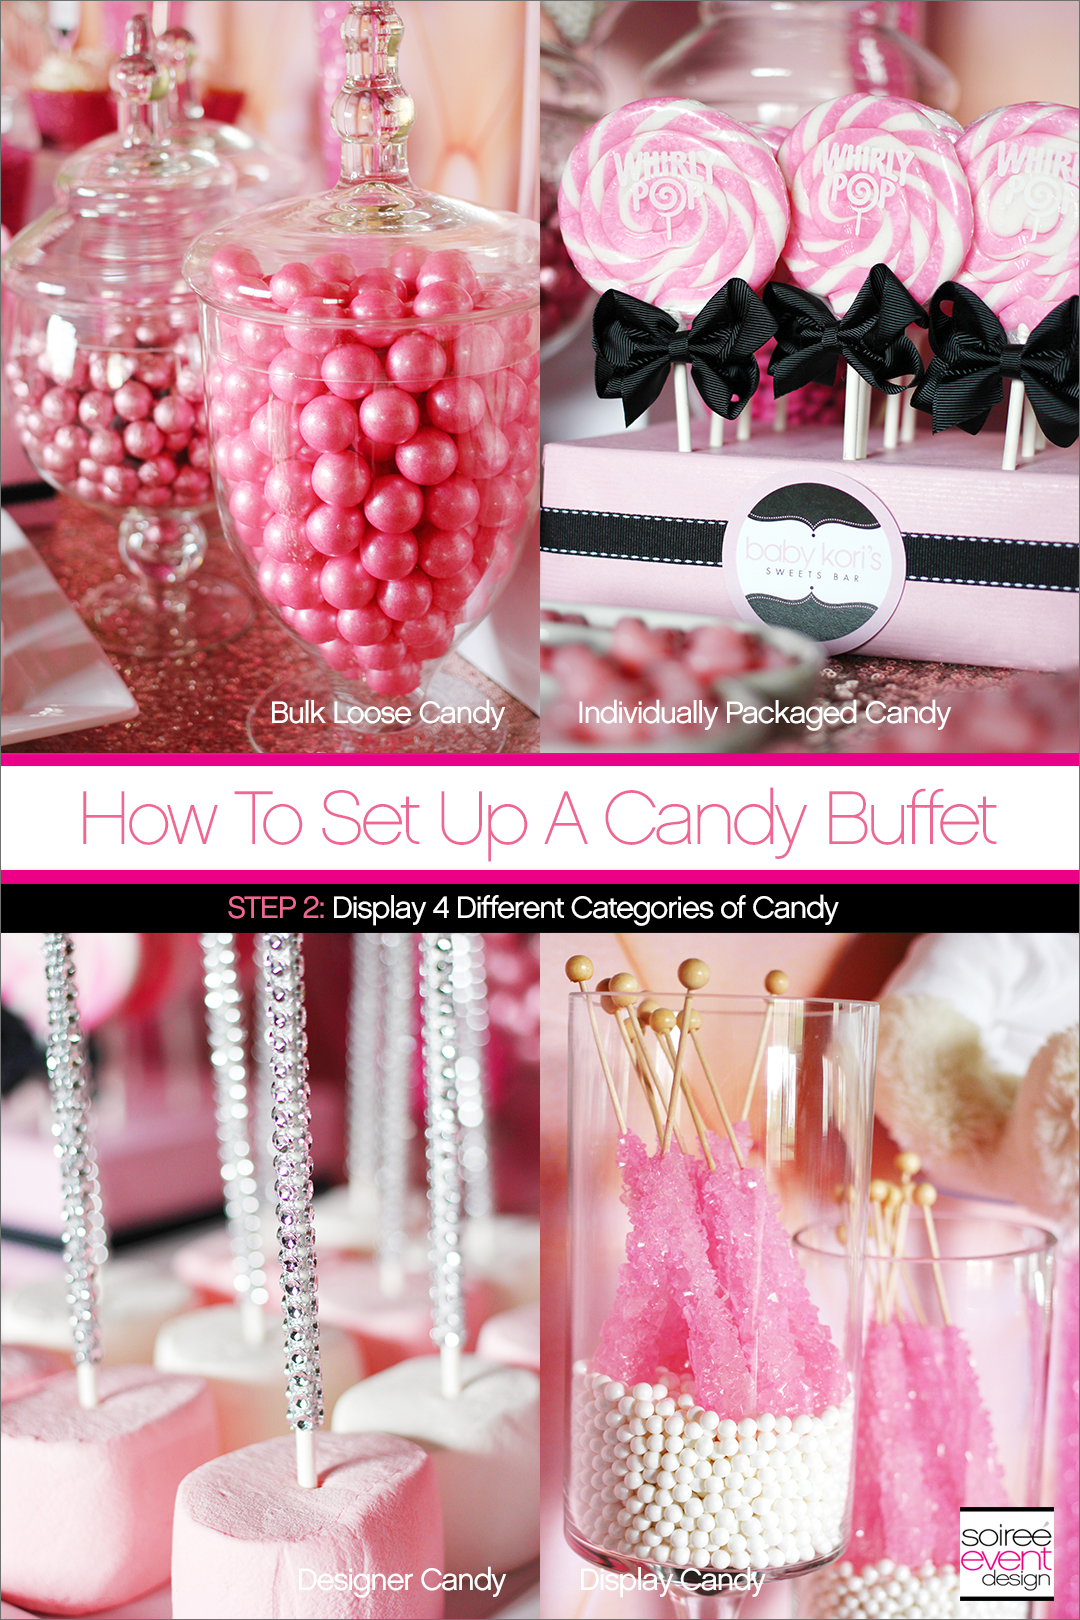 How to Set Up a Candy Buffet Step 2